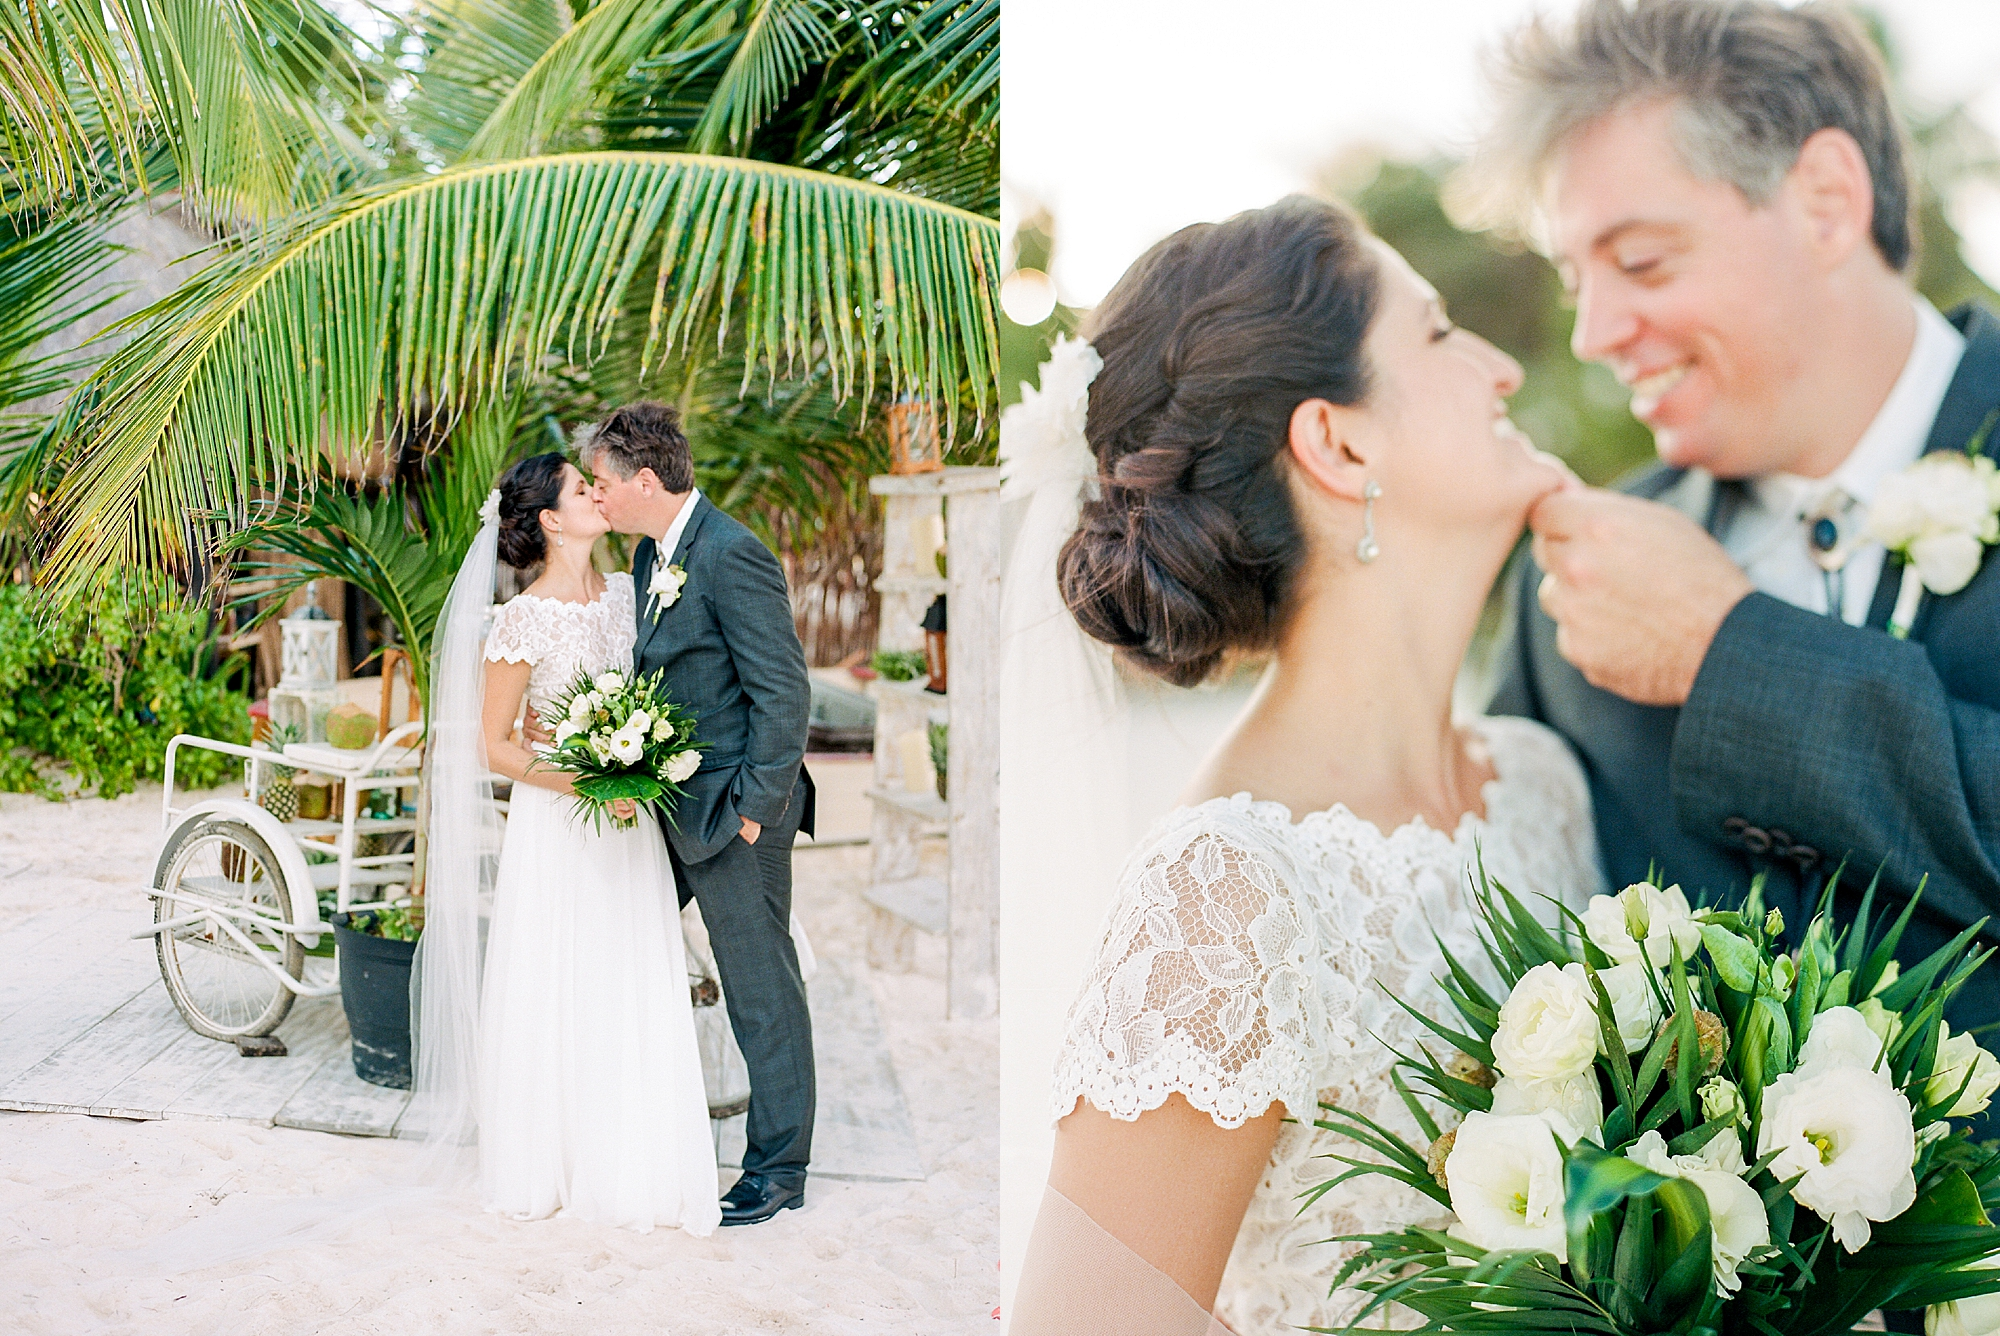 Stylish and Candid Destination Film Wedding Photography in Tulum Mexico by Magdalena Studios 0026